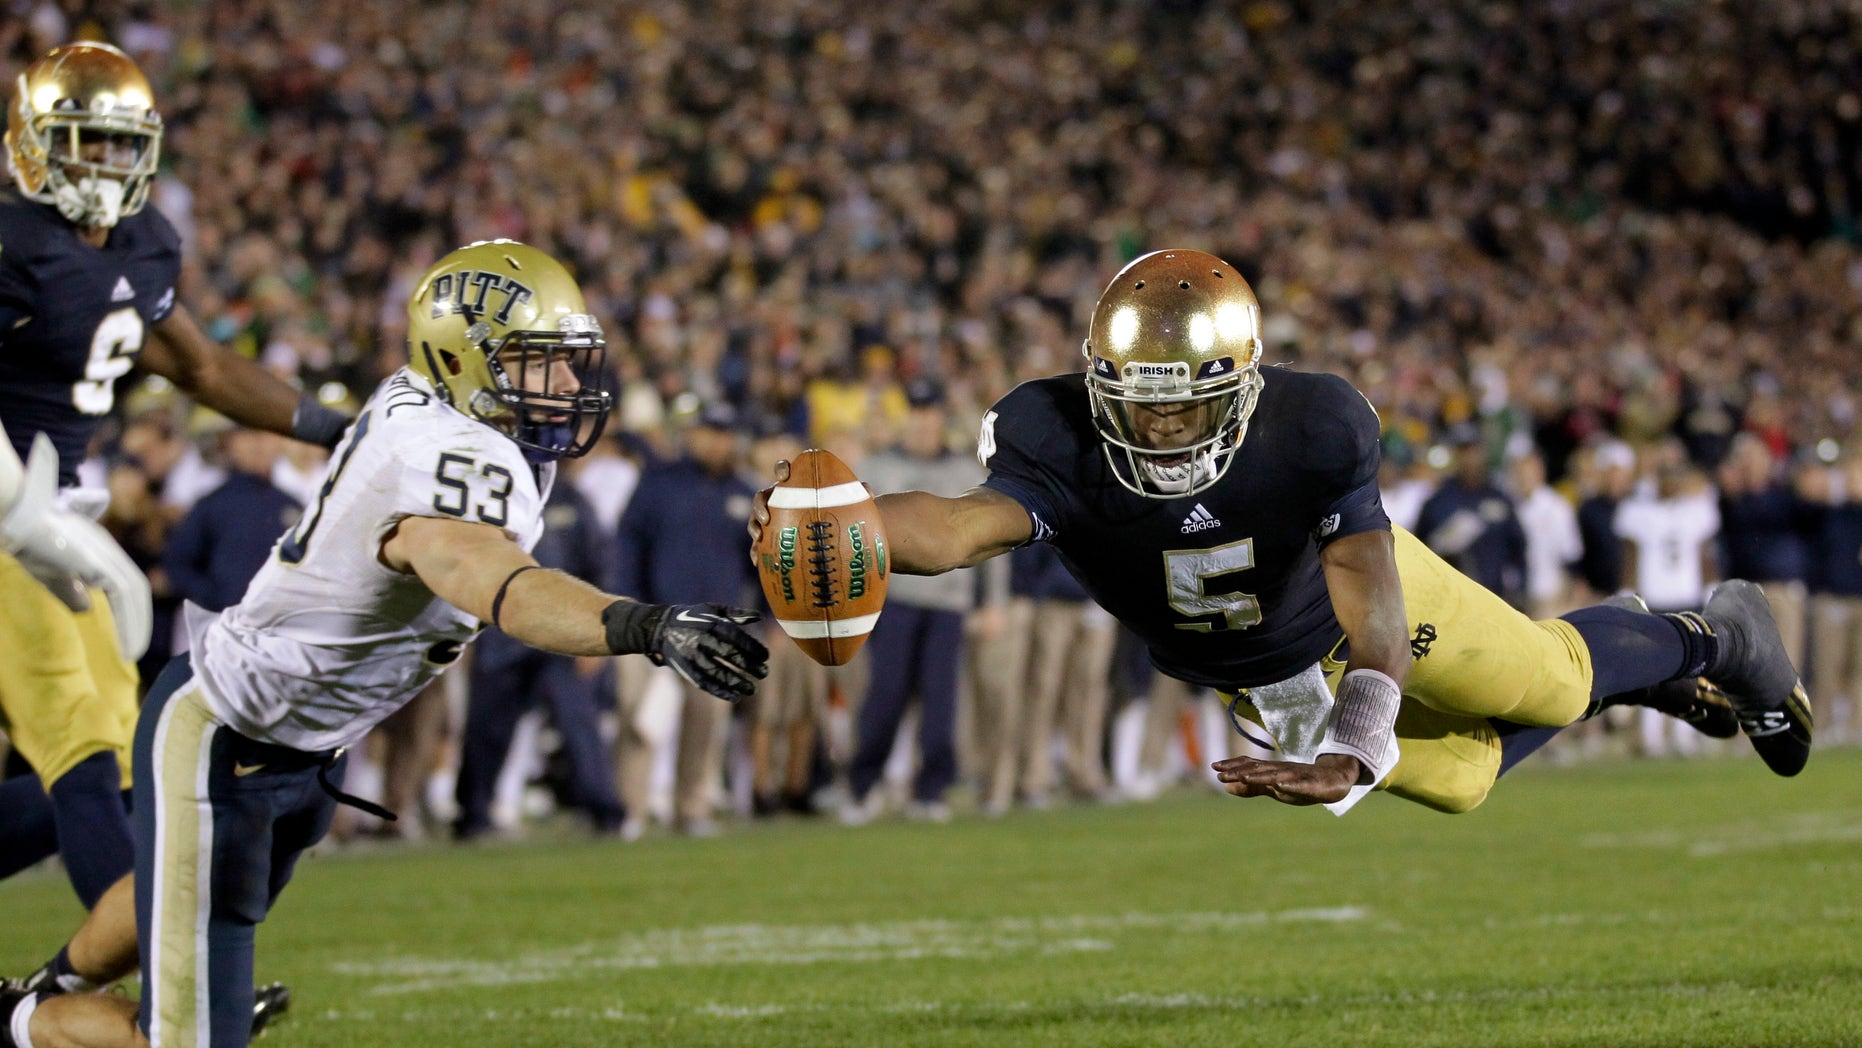 FILE - In this Nov. 3, 2012 file photo, Notre Dame quarterback Everett Golson, right, dives into the end zone in front of Pittsburgh linebacker Joe Trebitz for a two-point conversion to tie the score late in the fourth quarter of an NCAA college football game in South Bend, Ind. Golson is expecting a lot more of himself and the Fighting Irish offense next season.  (AP Photo/Michael Conroy, FILE)